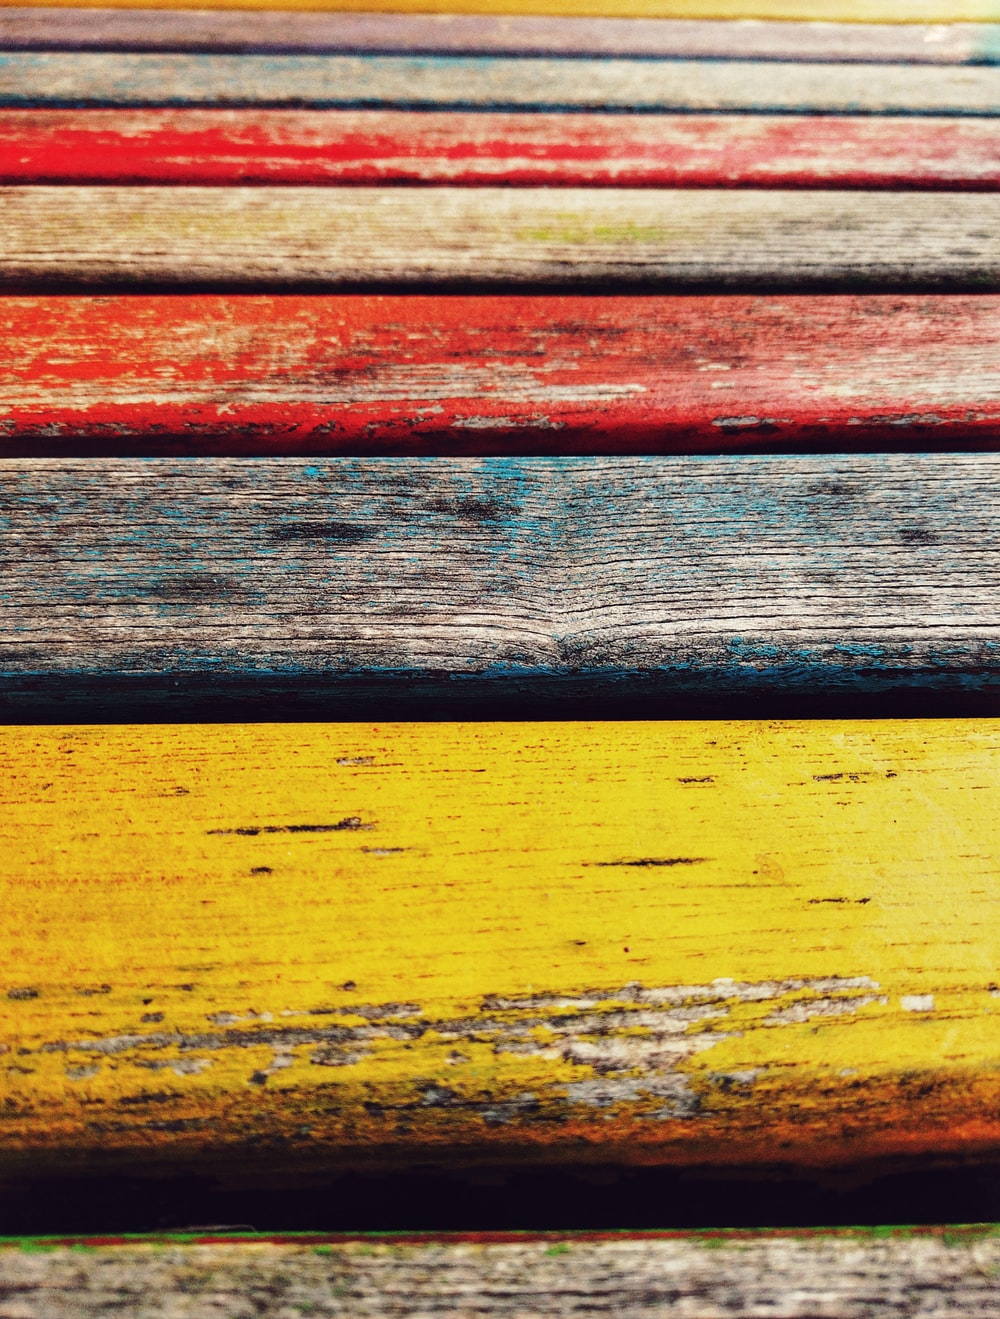 brown and red wooden planks